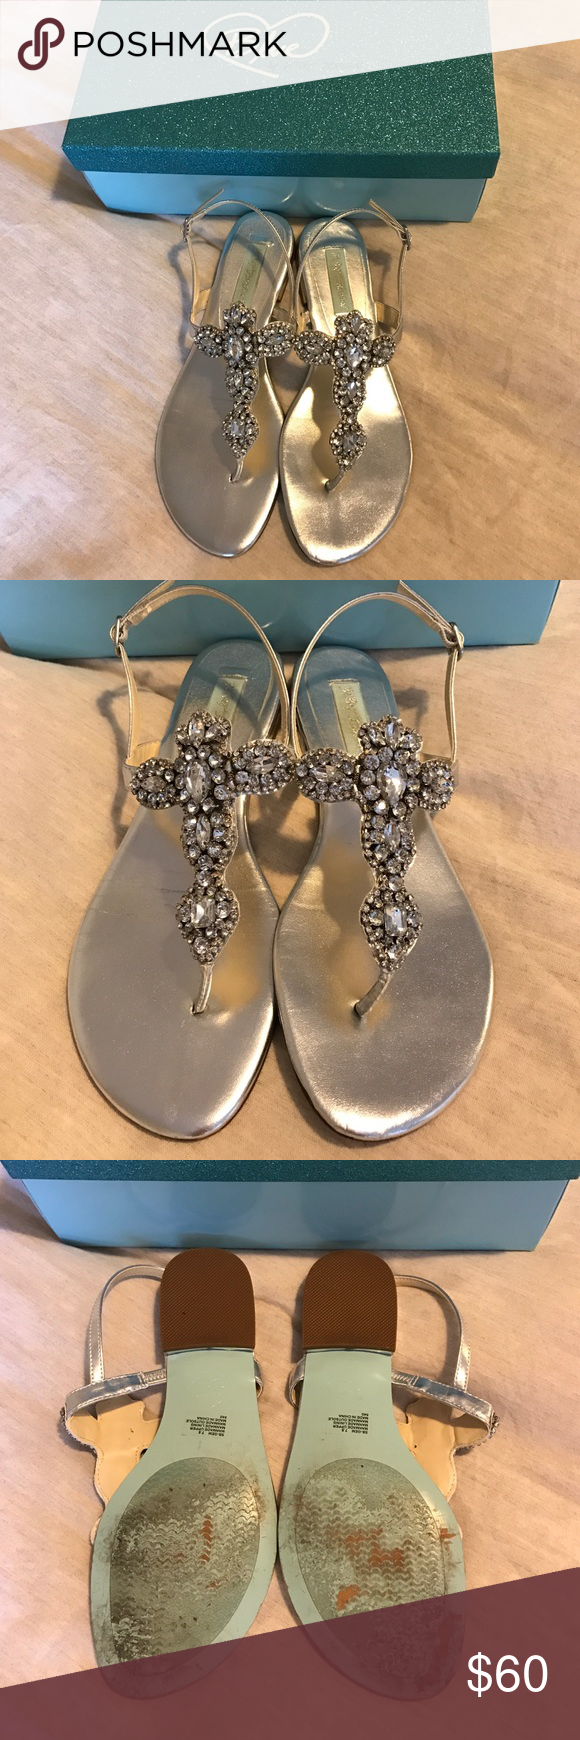 Blue by Betsey Johnson Gem Sandals These shoes are perfect for a dressy night out or to change into after a wedding ceremony! Only been worn once to one wedding, a little worn on the bottom, but flawless otherwise. Betsey Johnson Shoes Sandals